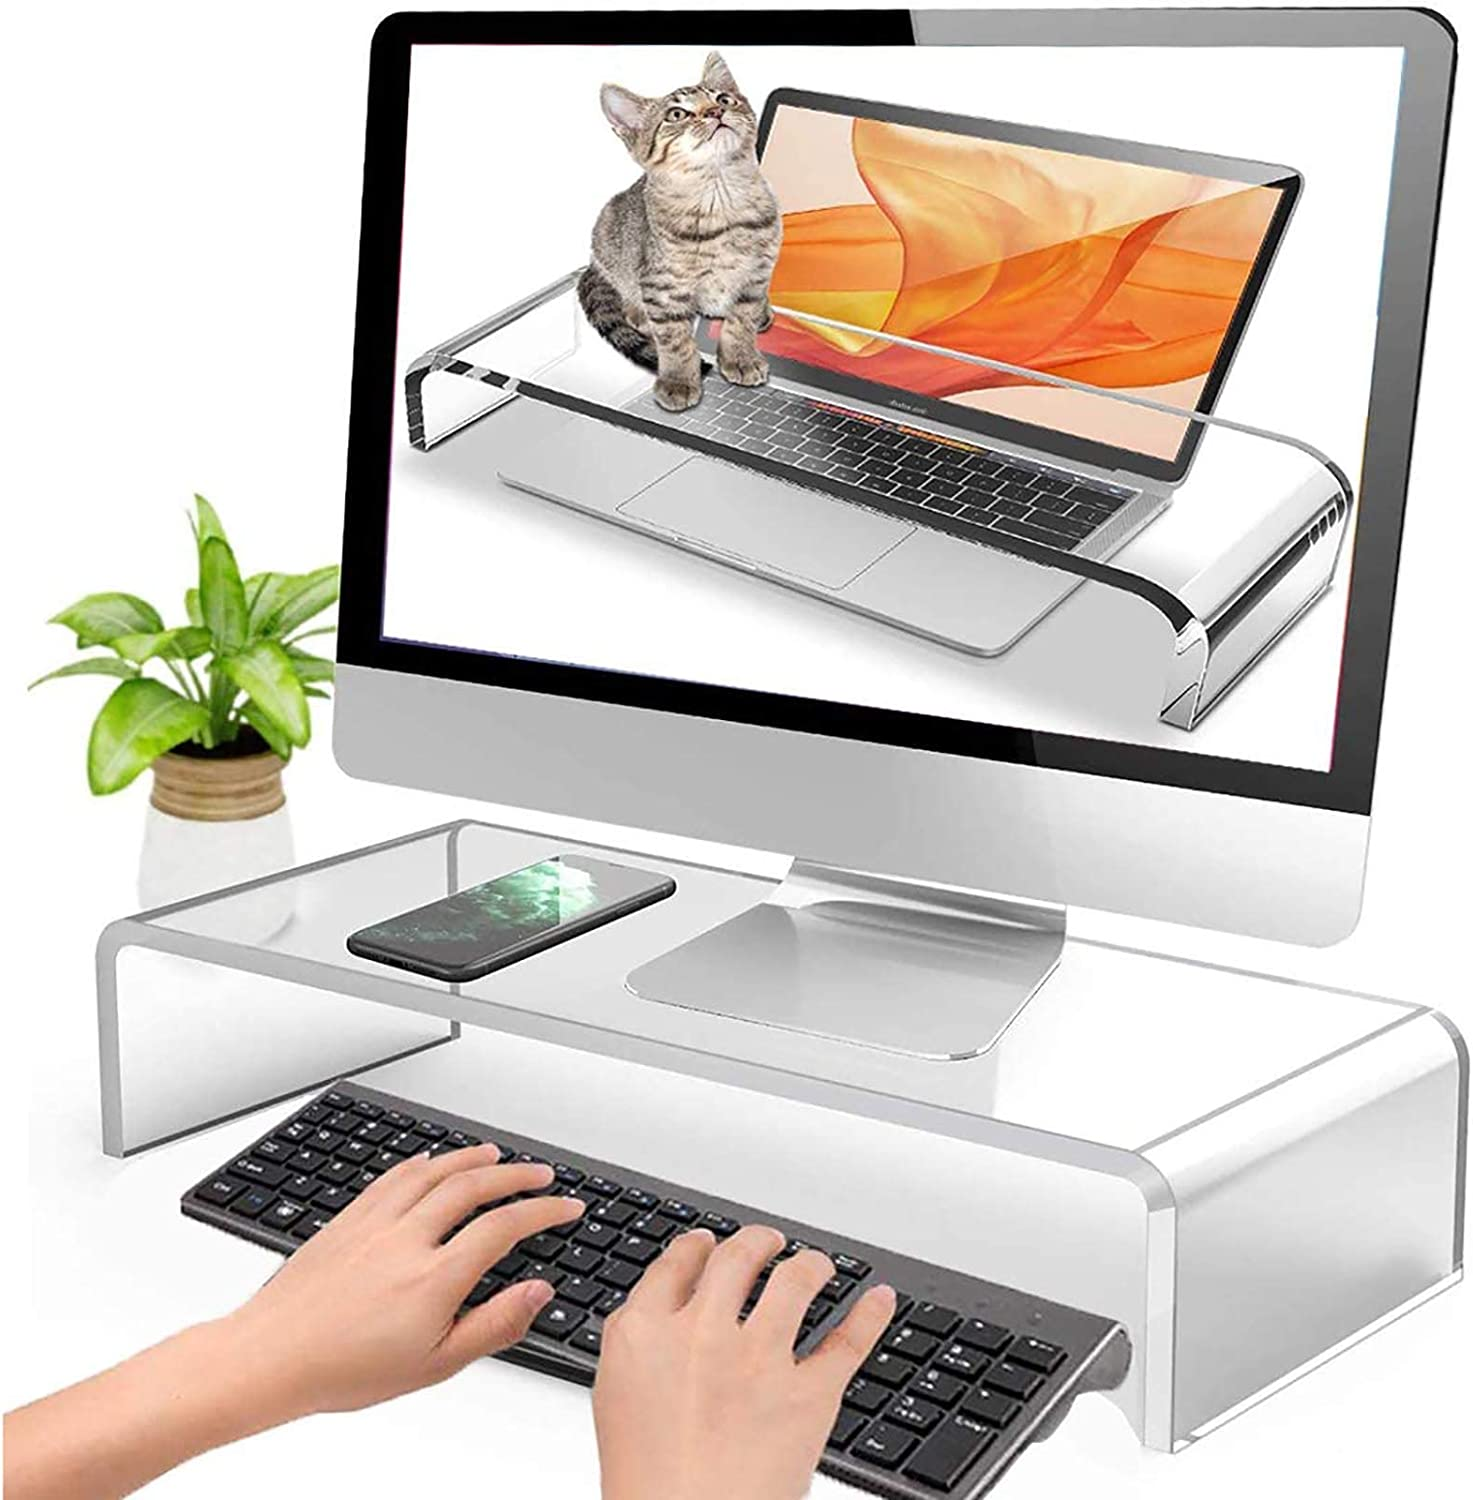 ZZJCY Clear Acrylic Keyboard Cover with Sturdy, Computer Monitor Riser Stand, Protector for Desktop Laptop Keyboard Printer PC Storage(Hold Up to 22Lbs),0.2in,19.7x6.7x3.9 in